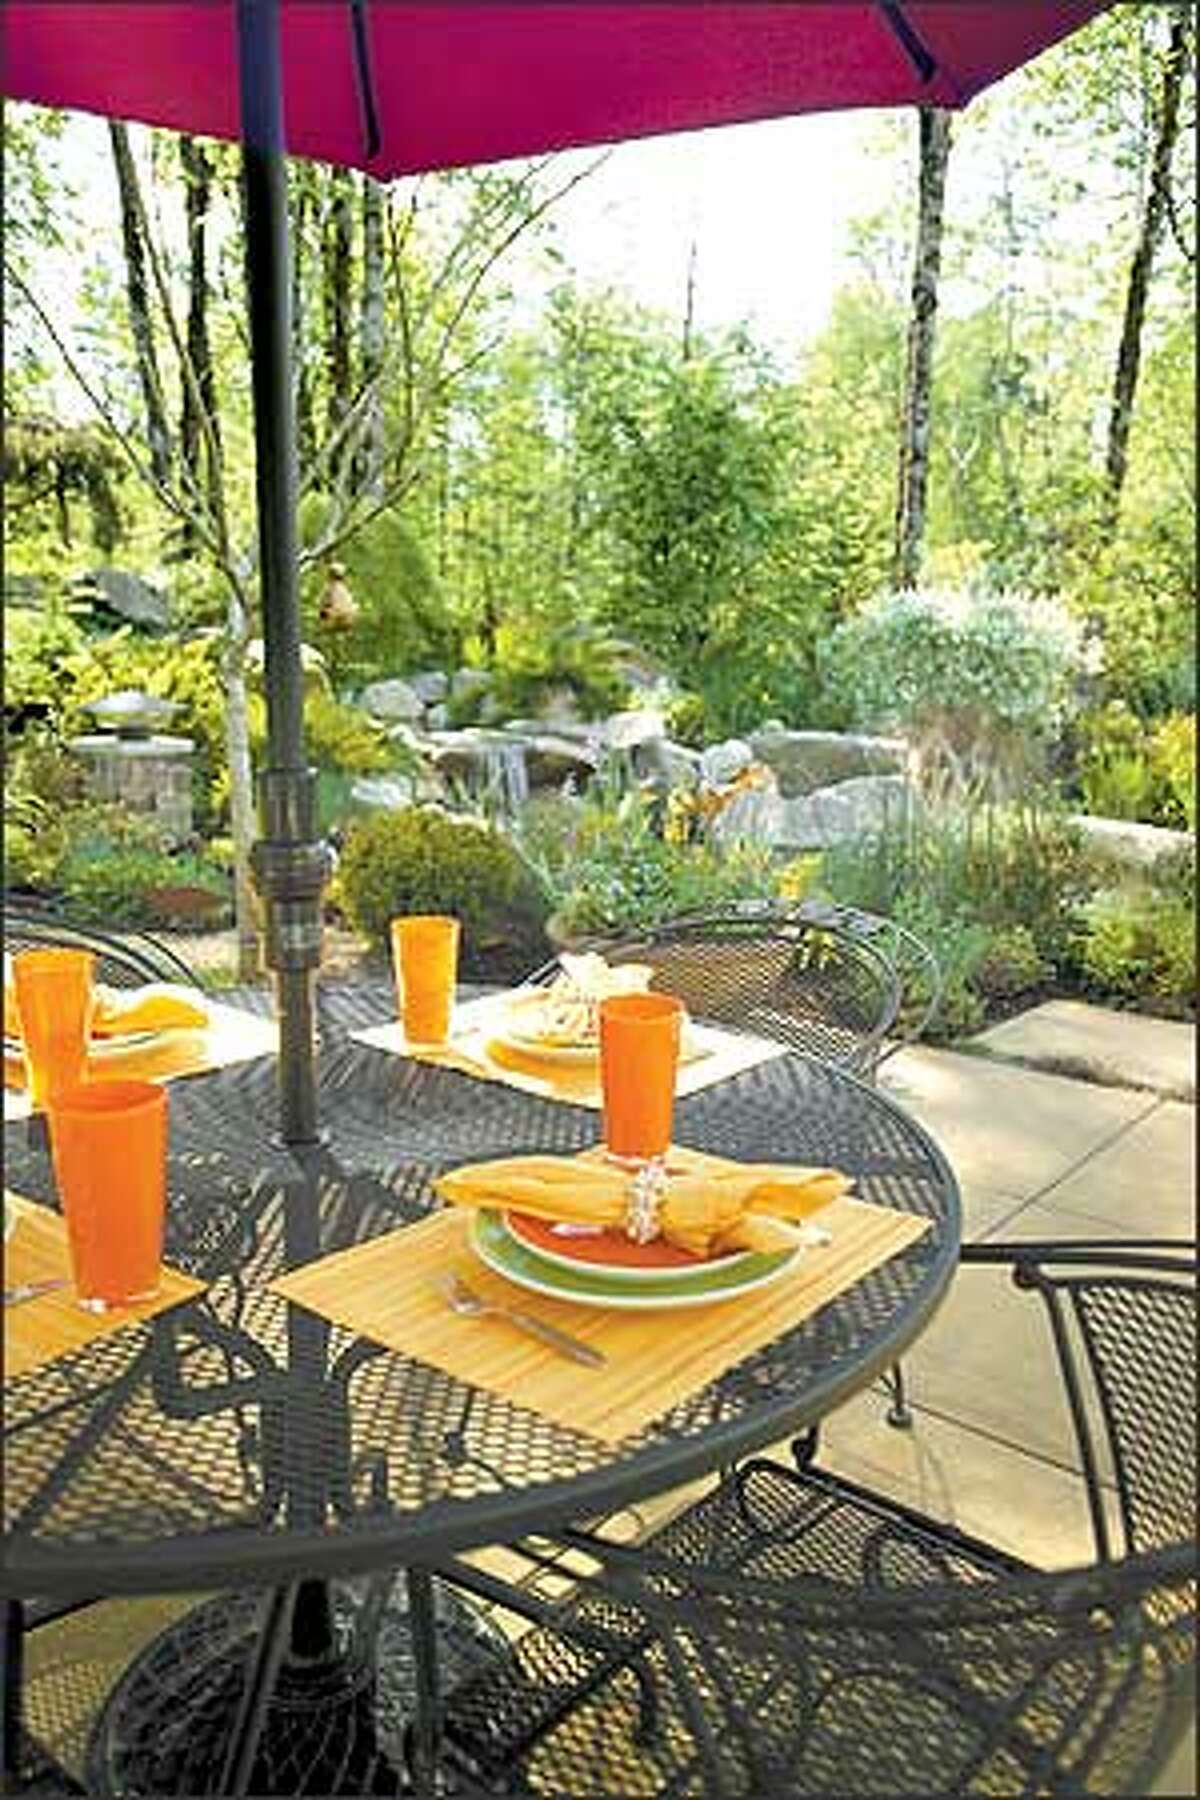 An umbrella-topped wrought-iron dining set allows guests to choose between eating in the sun or shade.